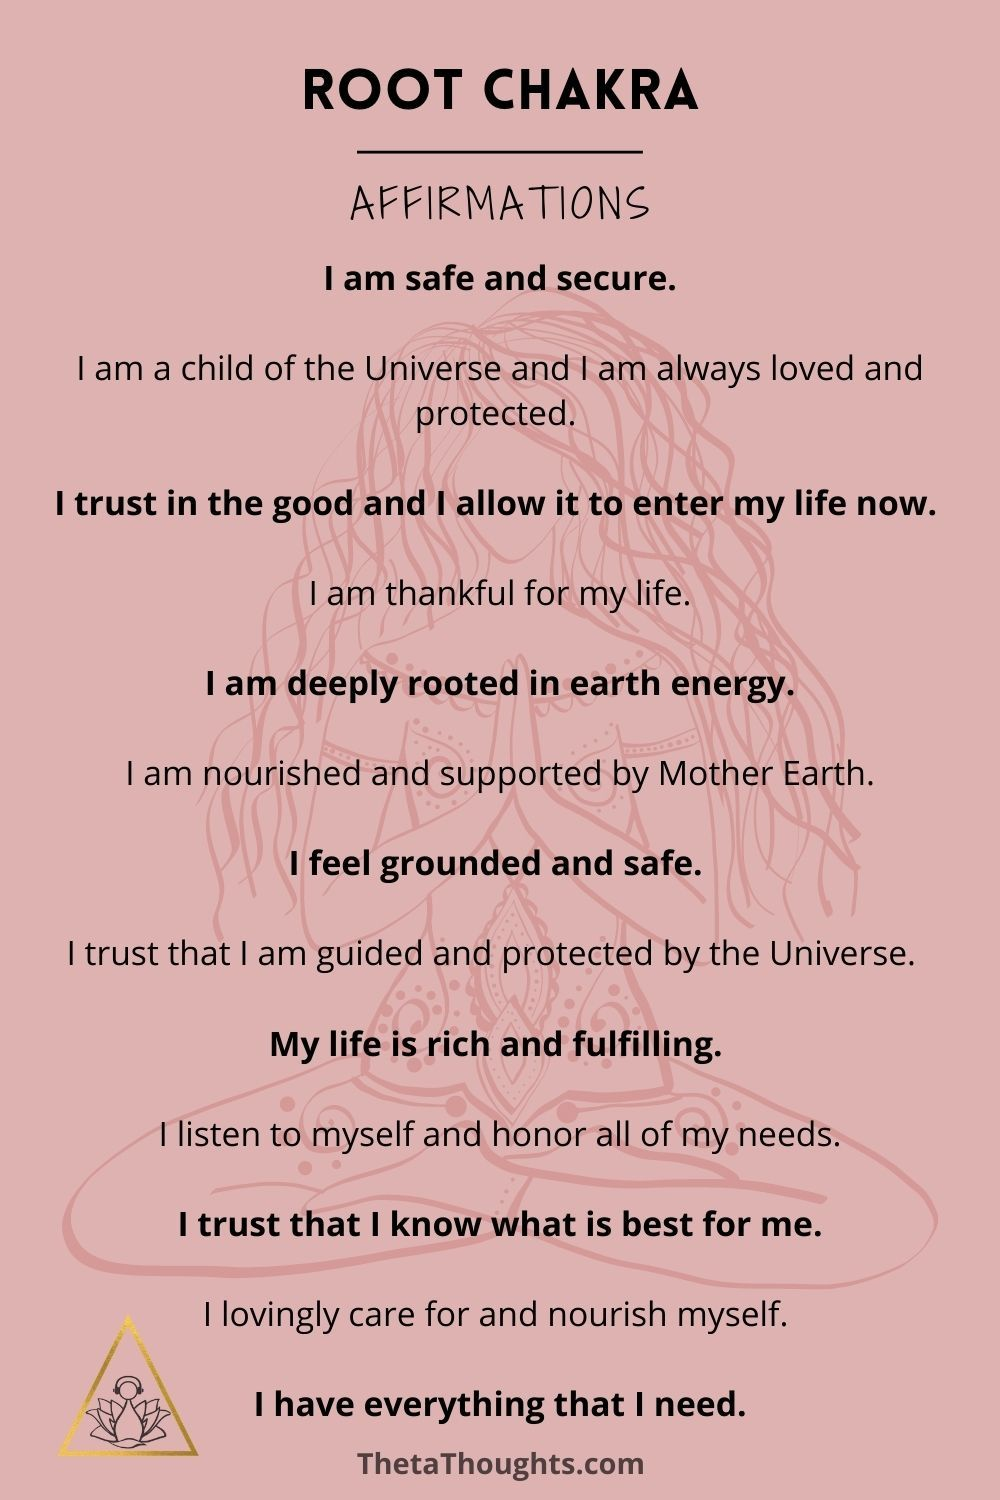 Positive Affirmations for Root Chakra